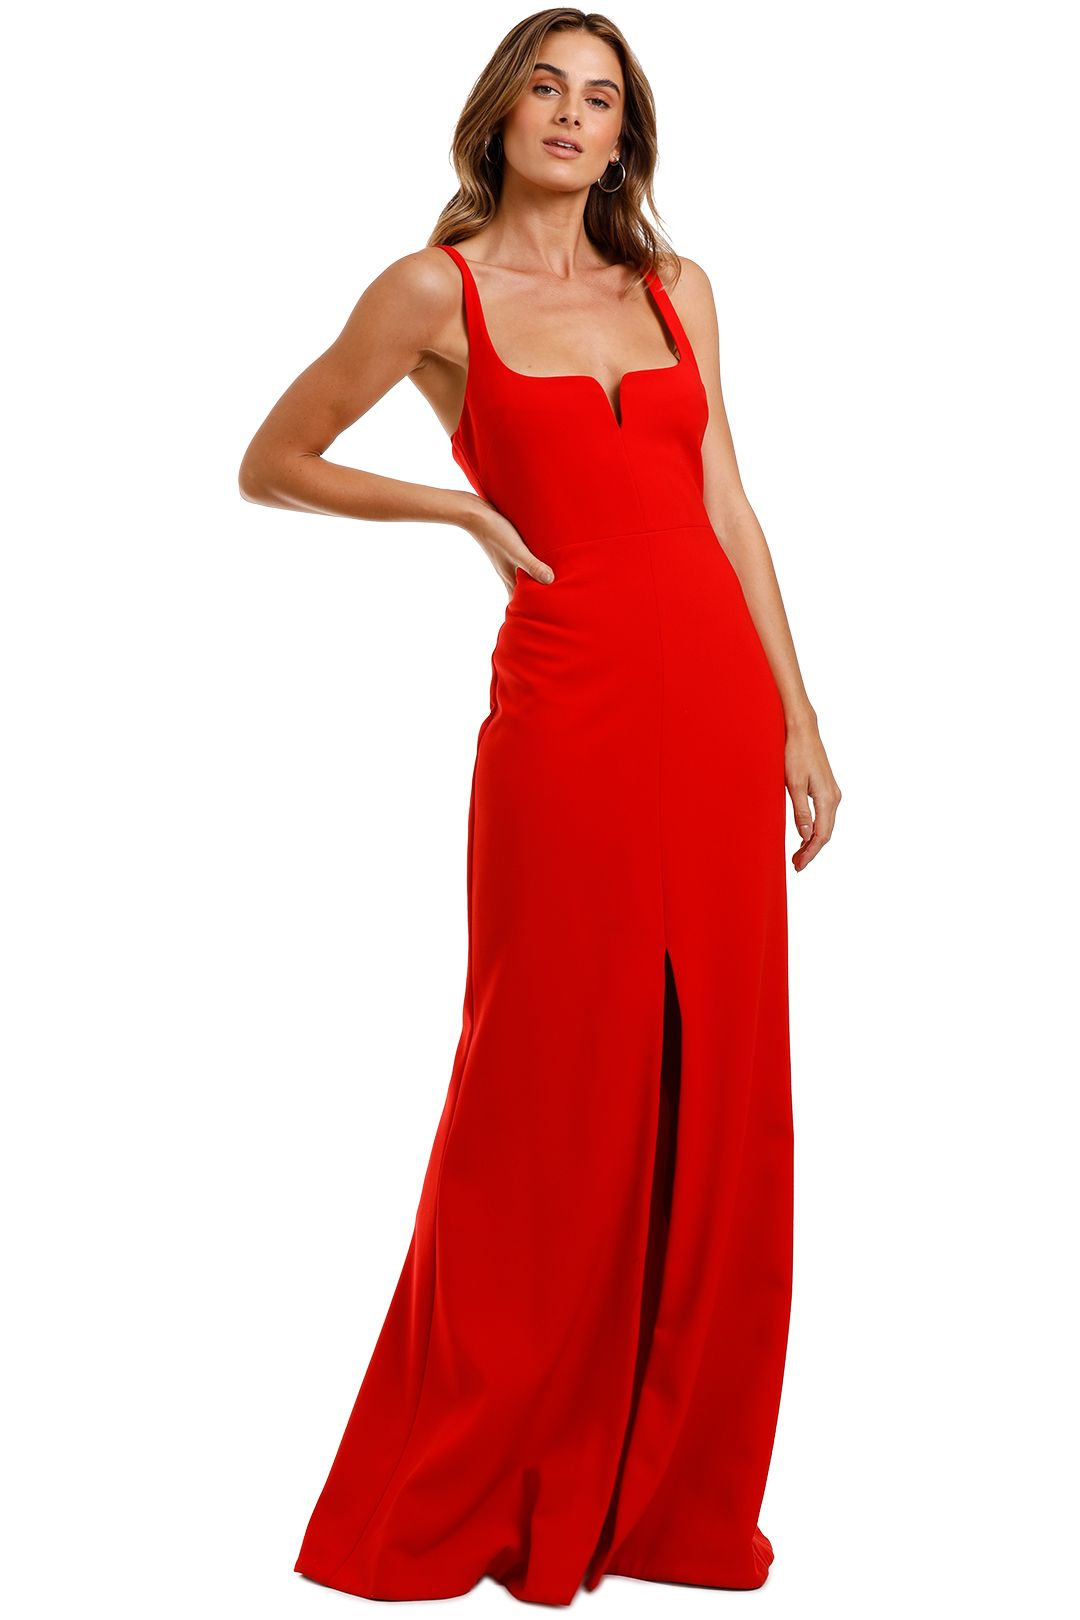 Likely NYC Constance Gown Scarlet